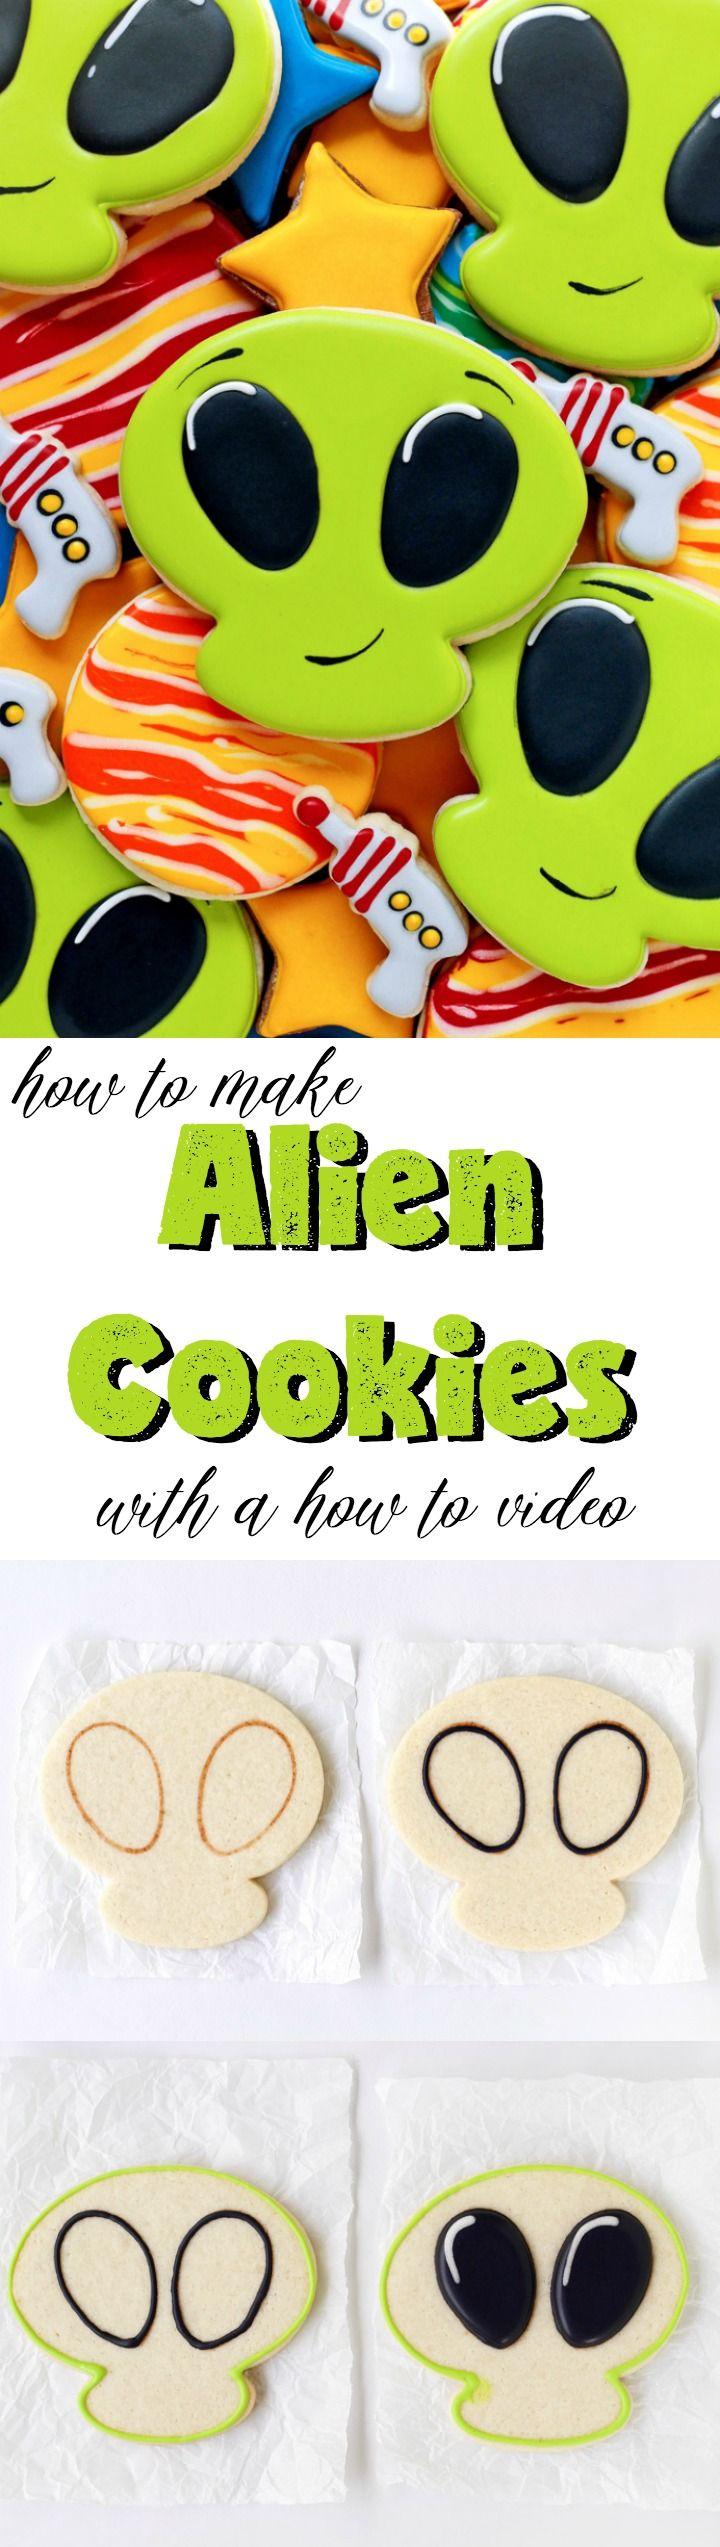 How to Make Alien Cookies with a How to Video   The Bearfoot Baker